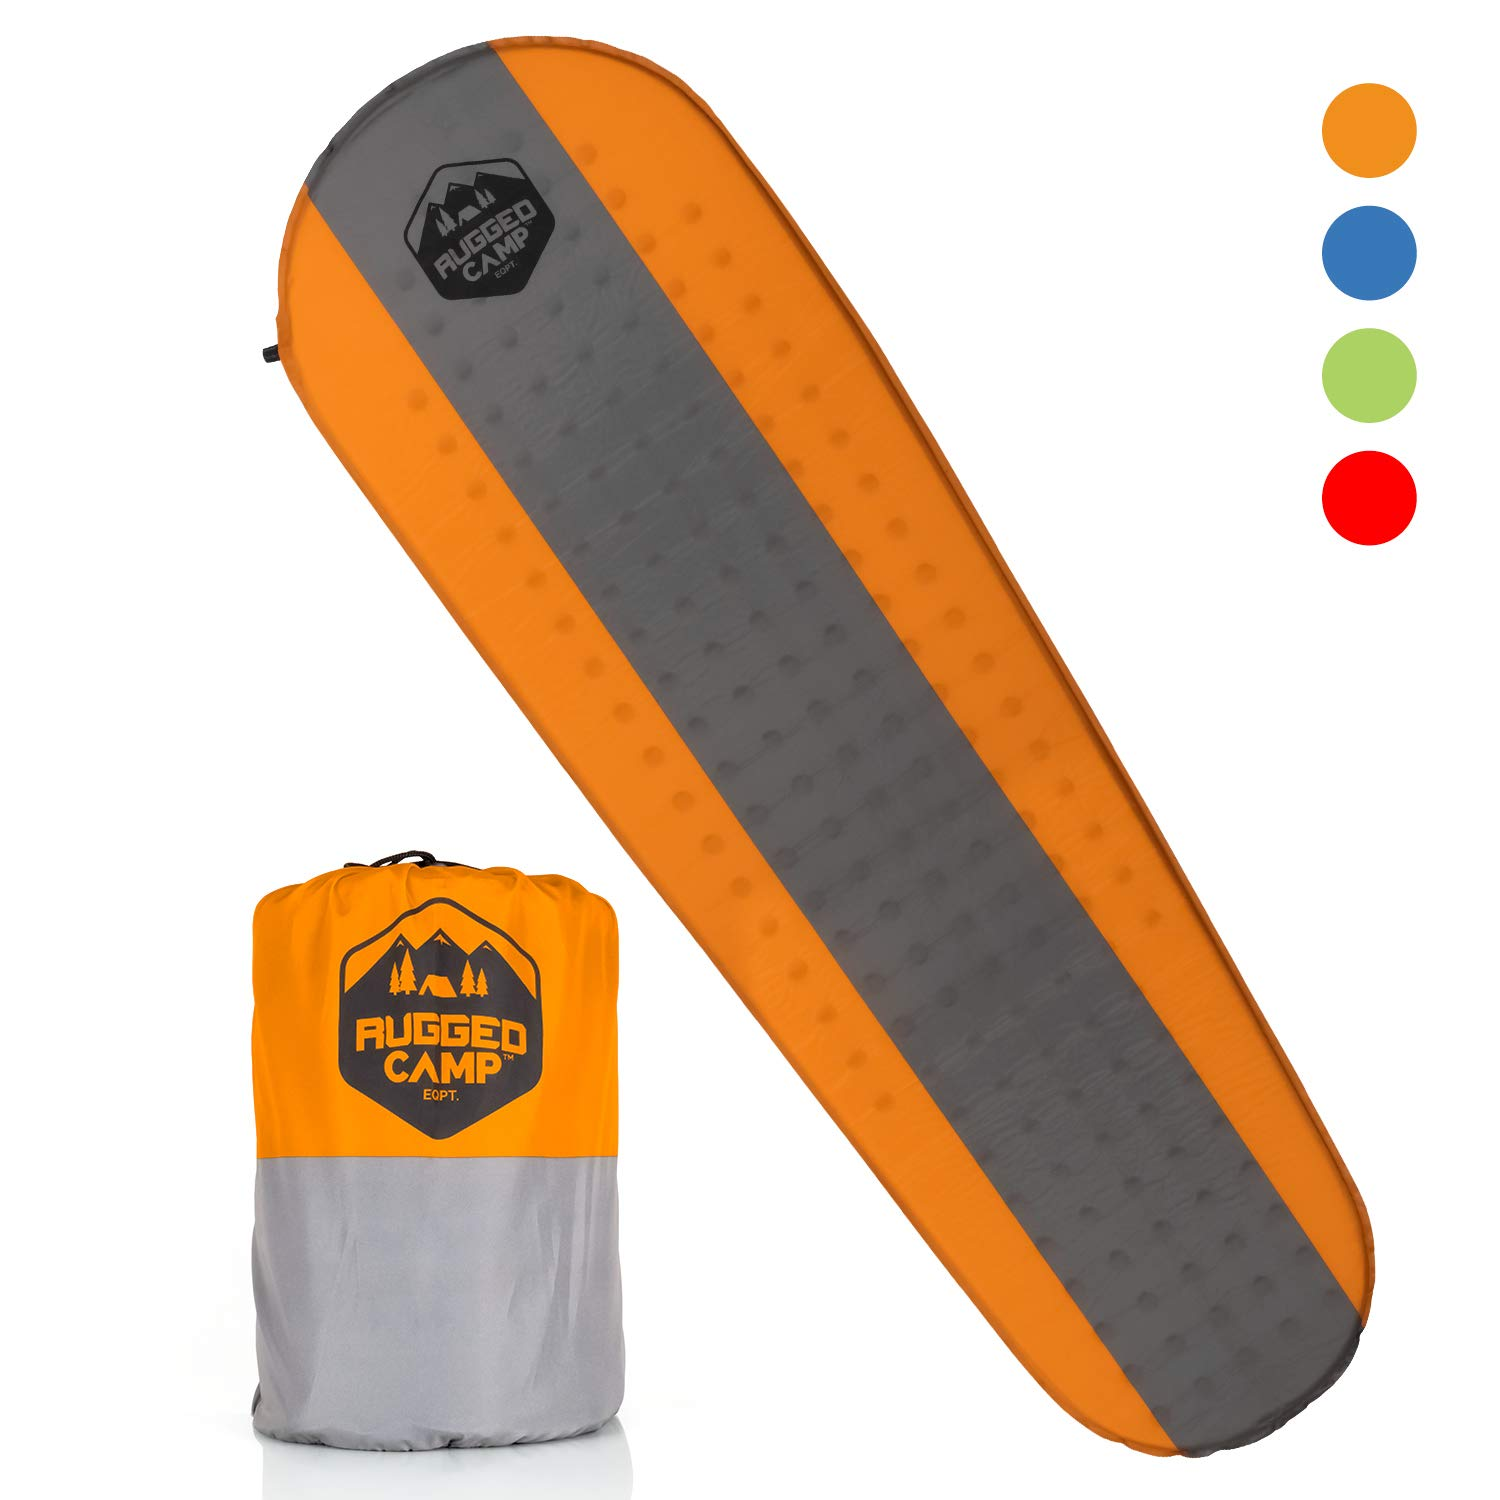 Rugged Camp Self Inflating Sleeping Pad - Sleep Comfortably in The Outdoors - Camping Gear and Accessories for Hiking, Backpacking, Travel - Lightweight and Compact Camping Mat (Orange) by Rugged Camp